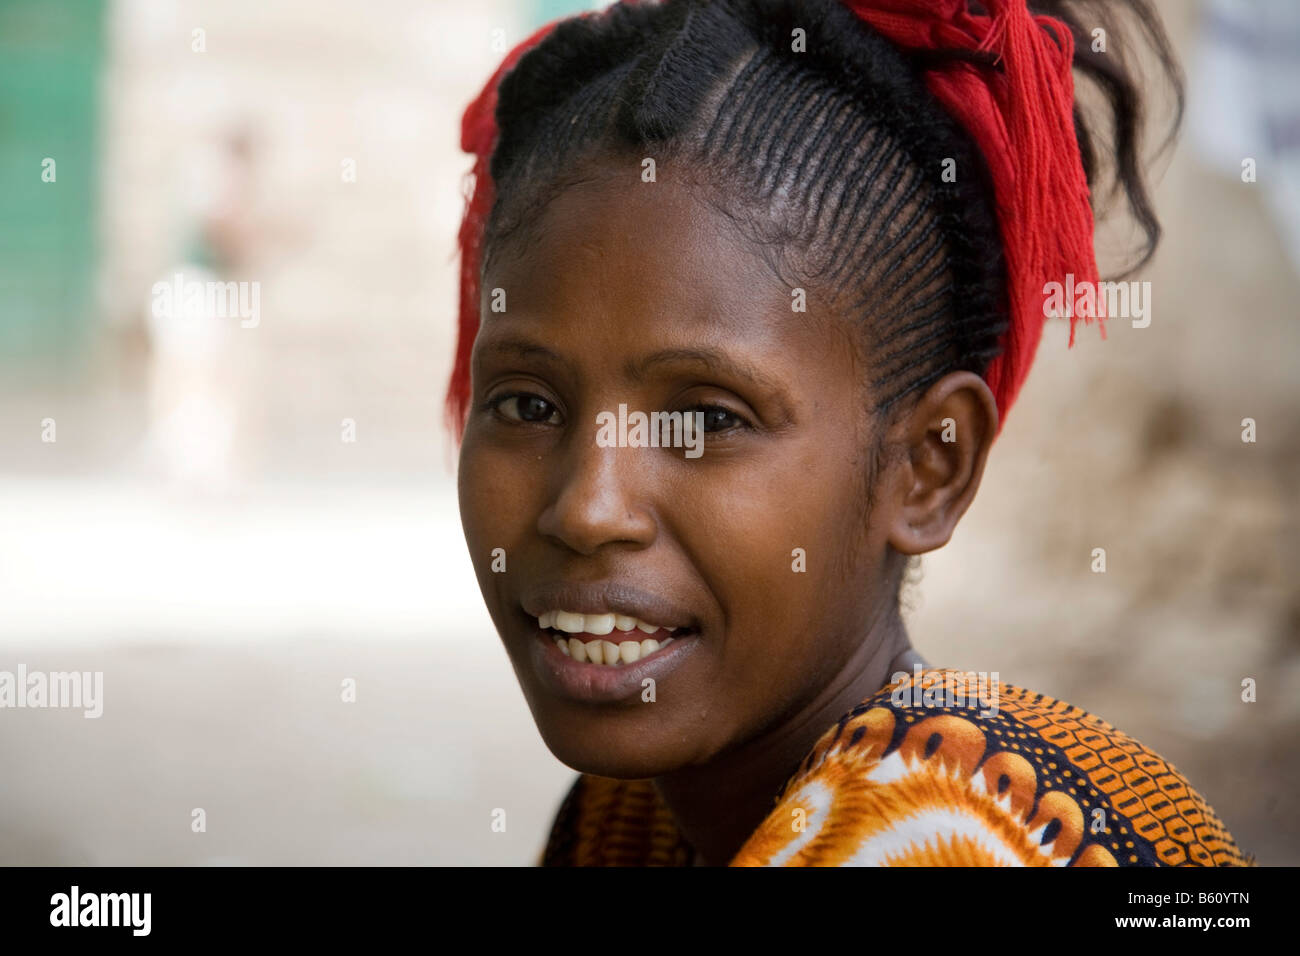 Portrait of a young woman, 20-25 years old, Eritrea, Africa Stock Photo